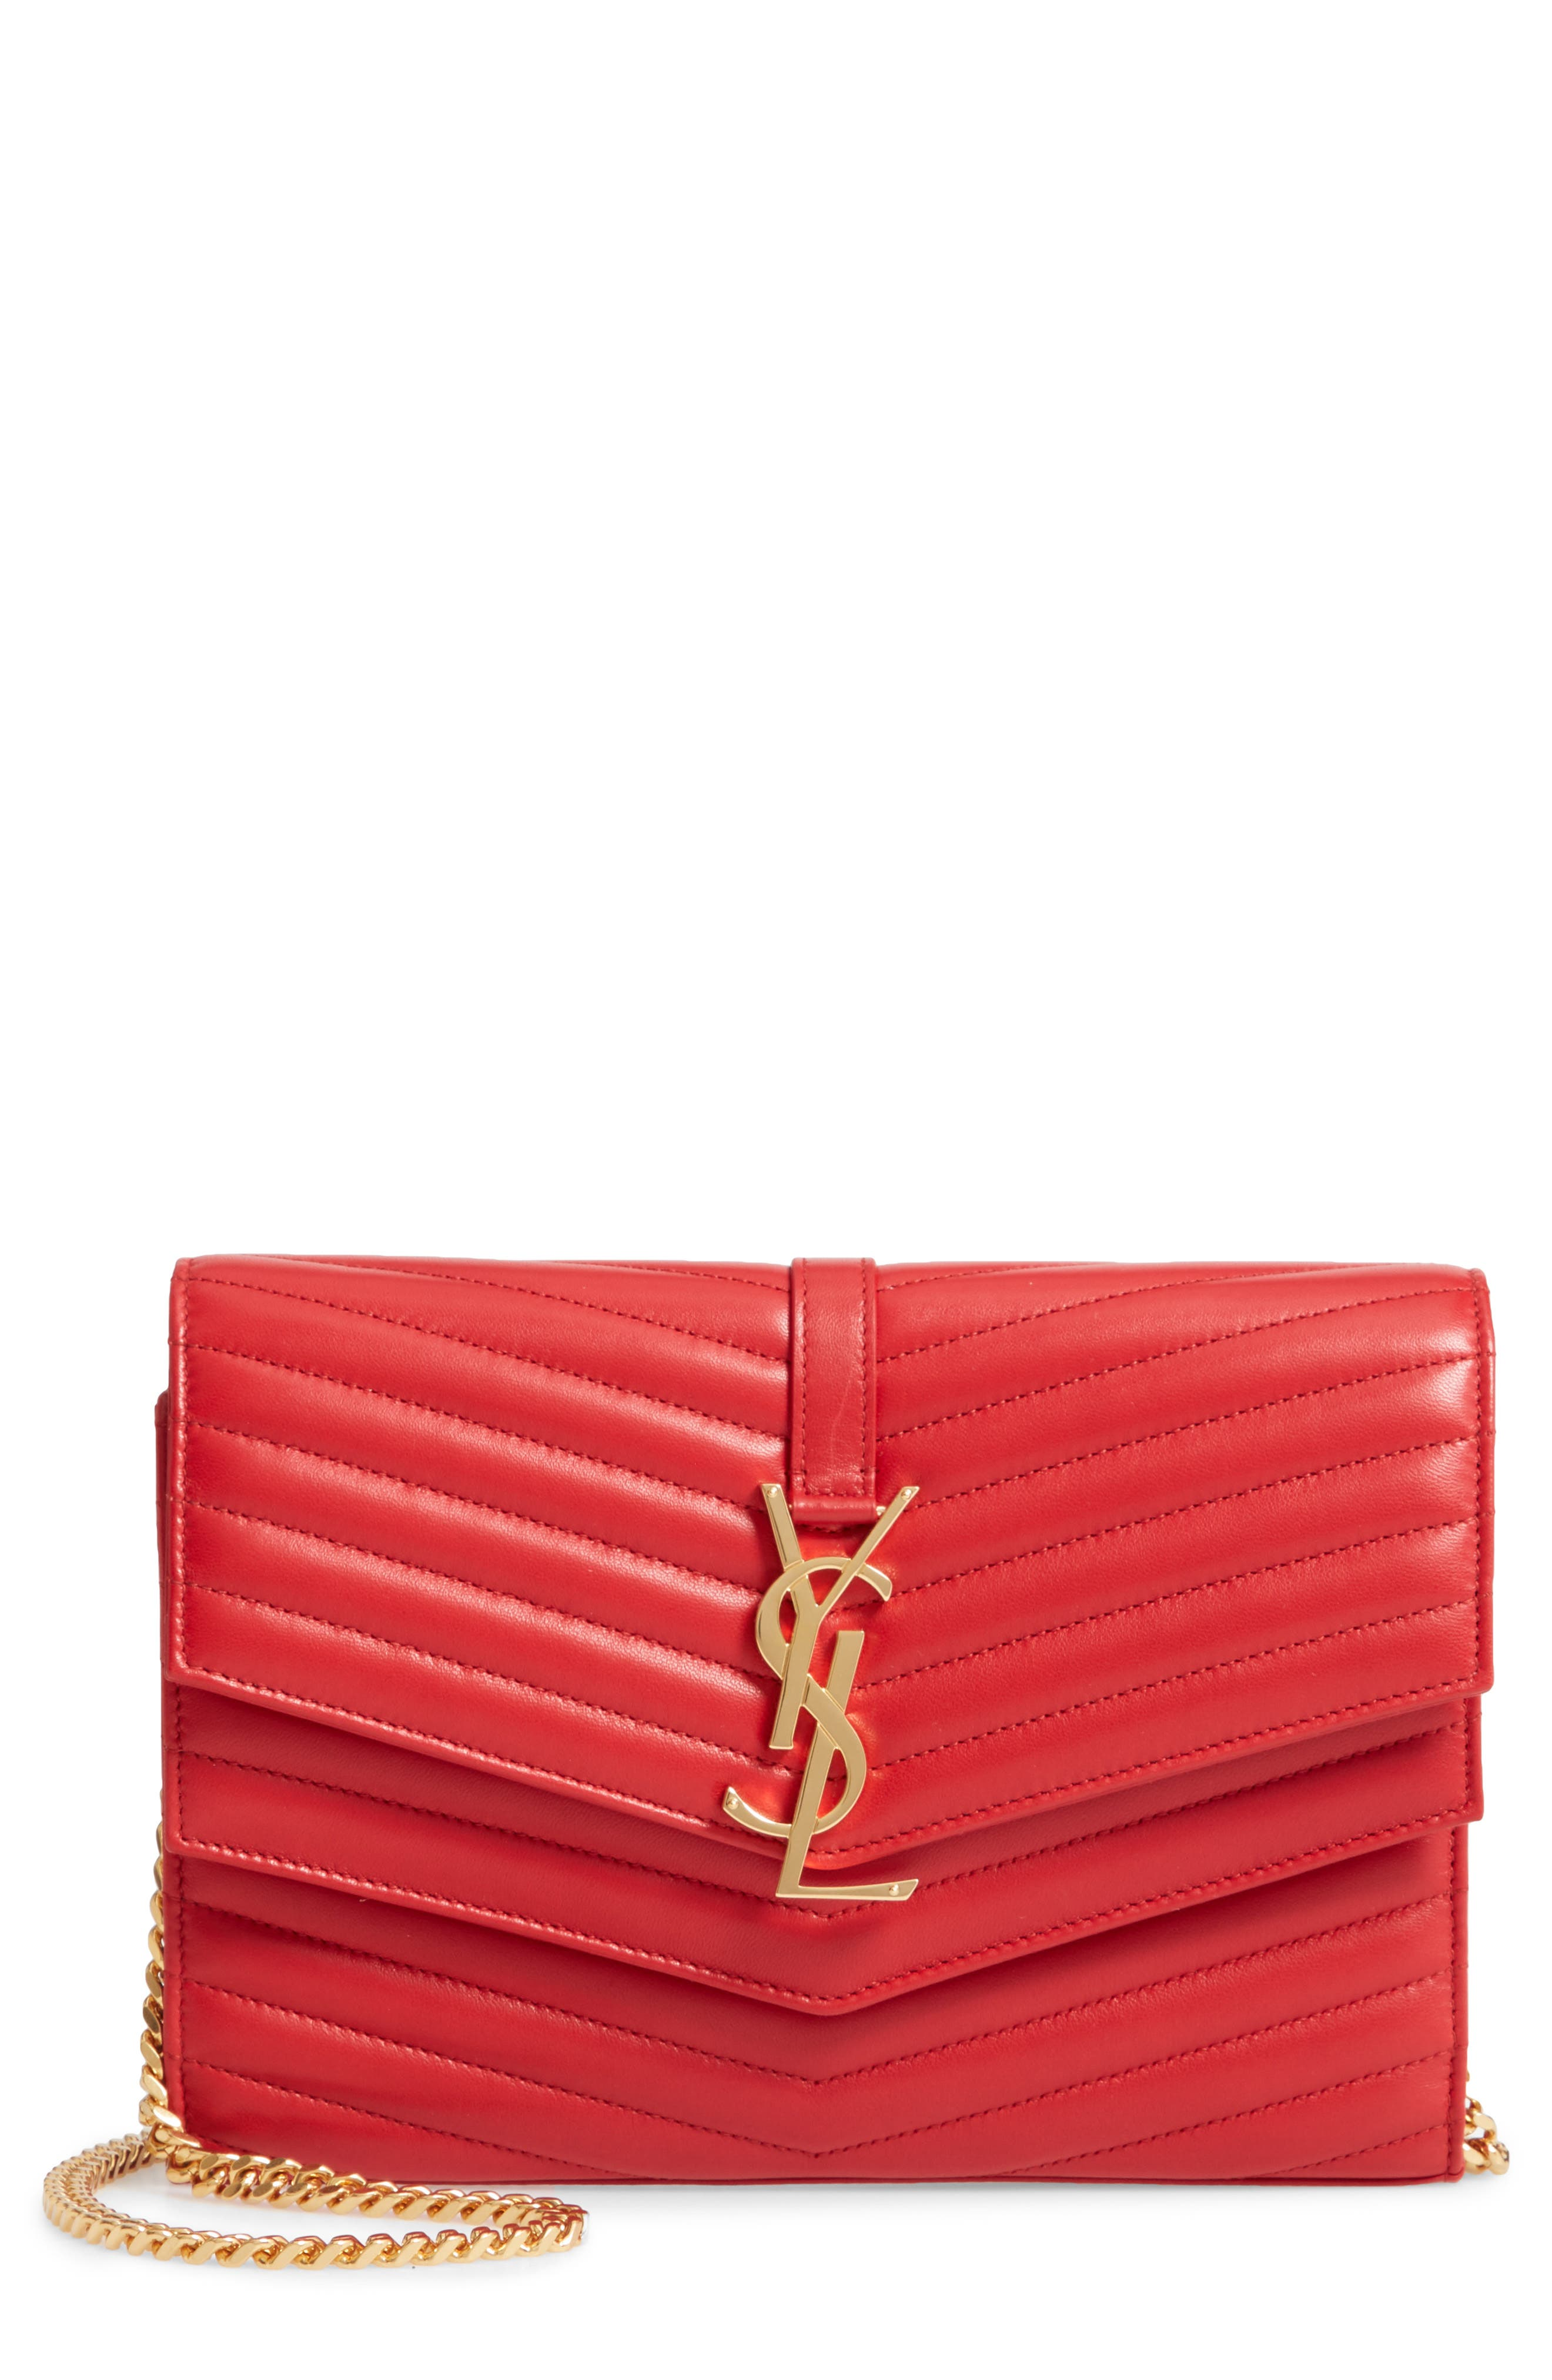 SAINT LAURENT Sulpice Leather Crossbody Wallet, Main, color, BANDANA RED